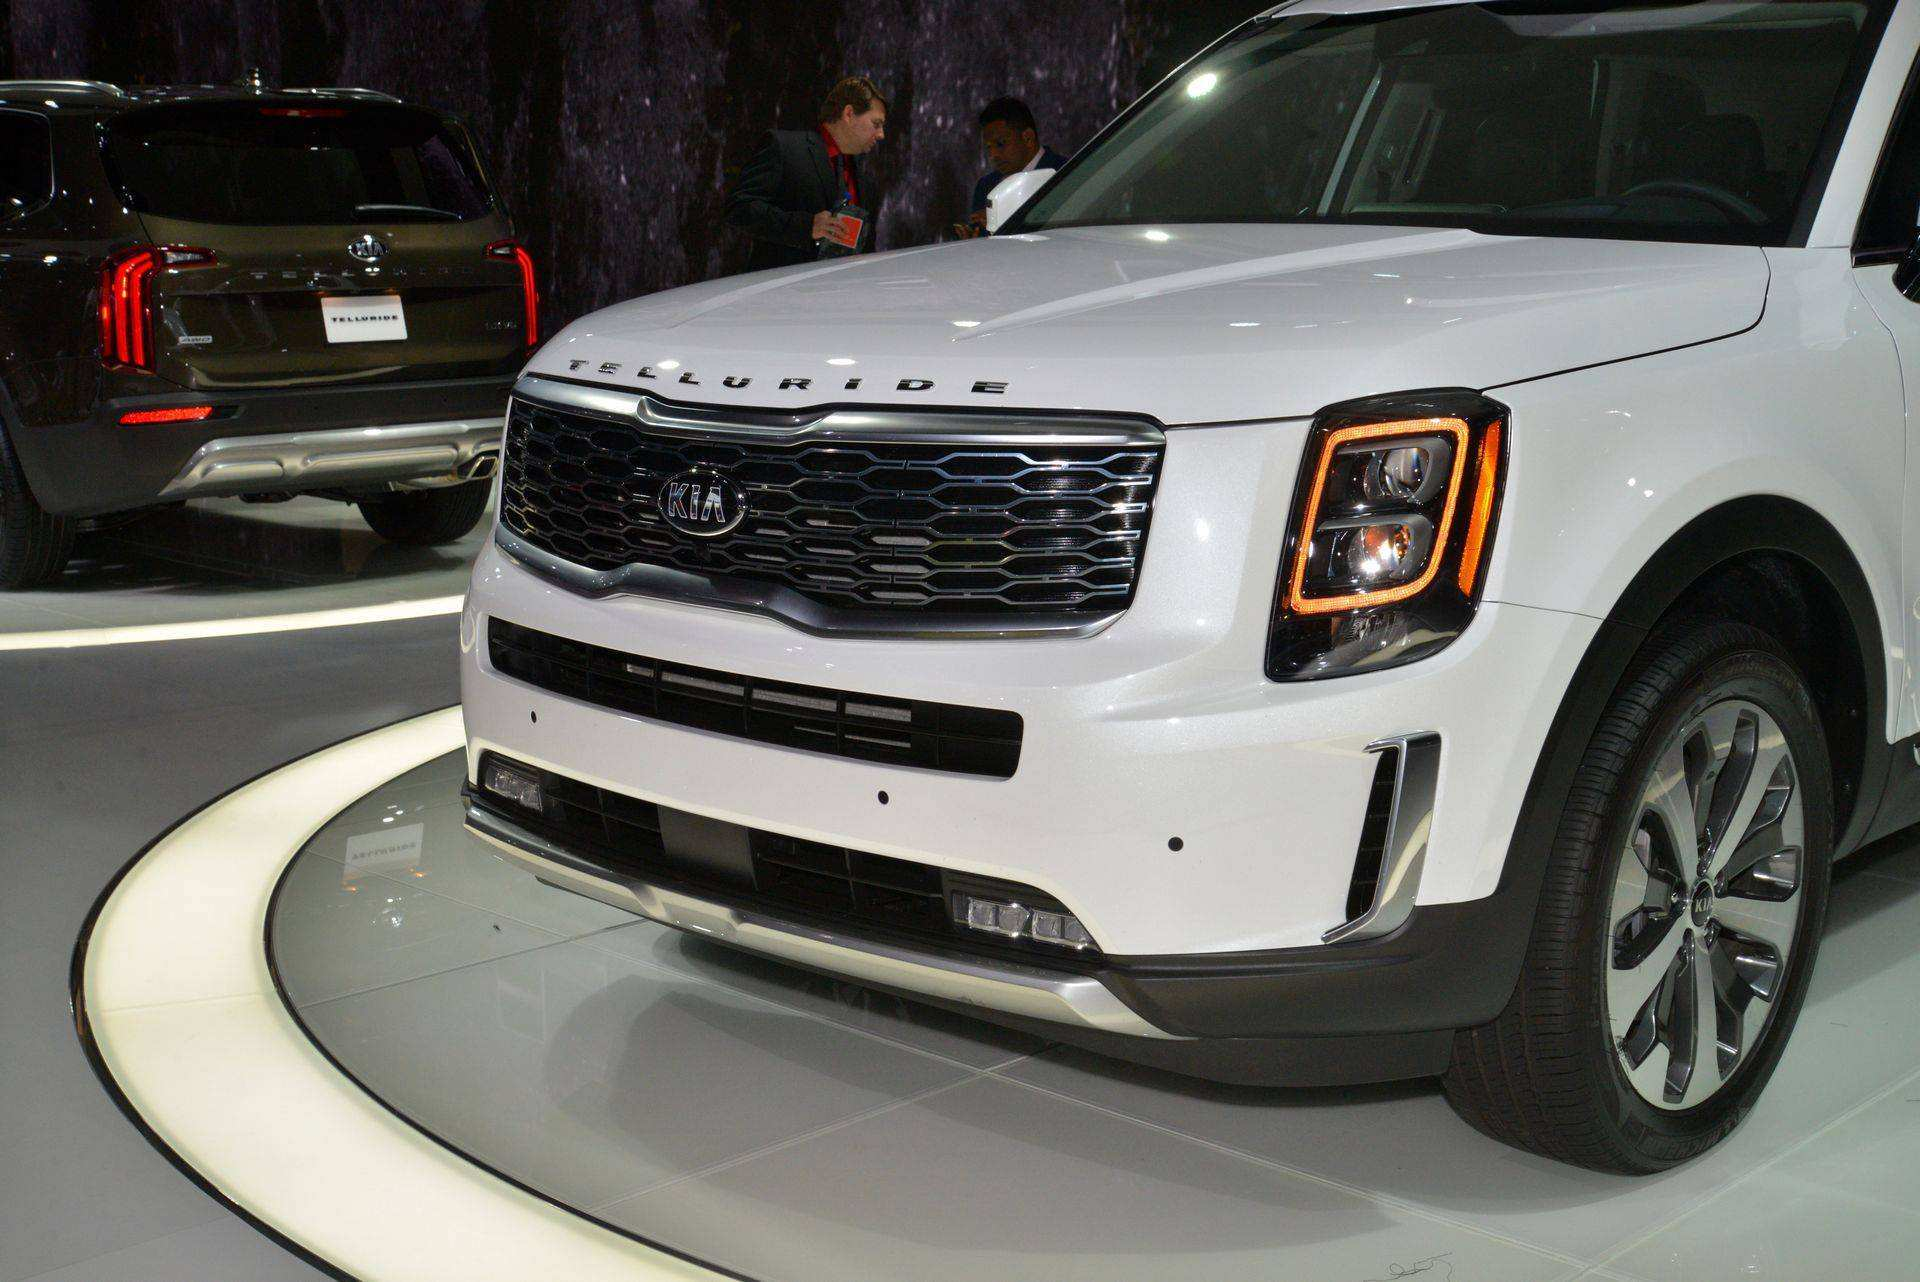 60 Best Review 2020 Kia Telluride Build And Price Wallpaper with 2020 Kia Telluride Build And Price